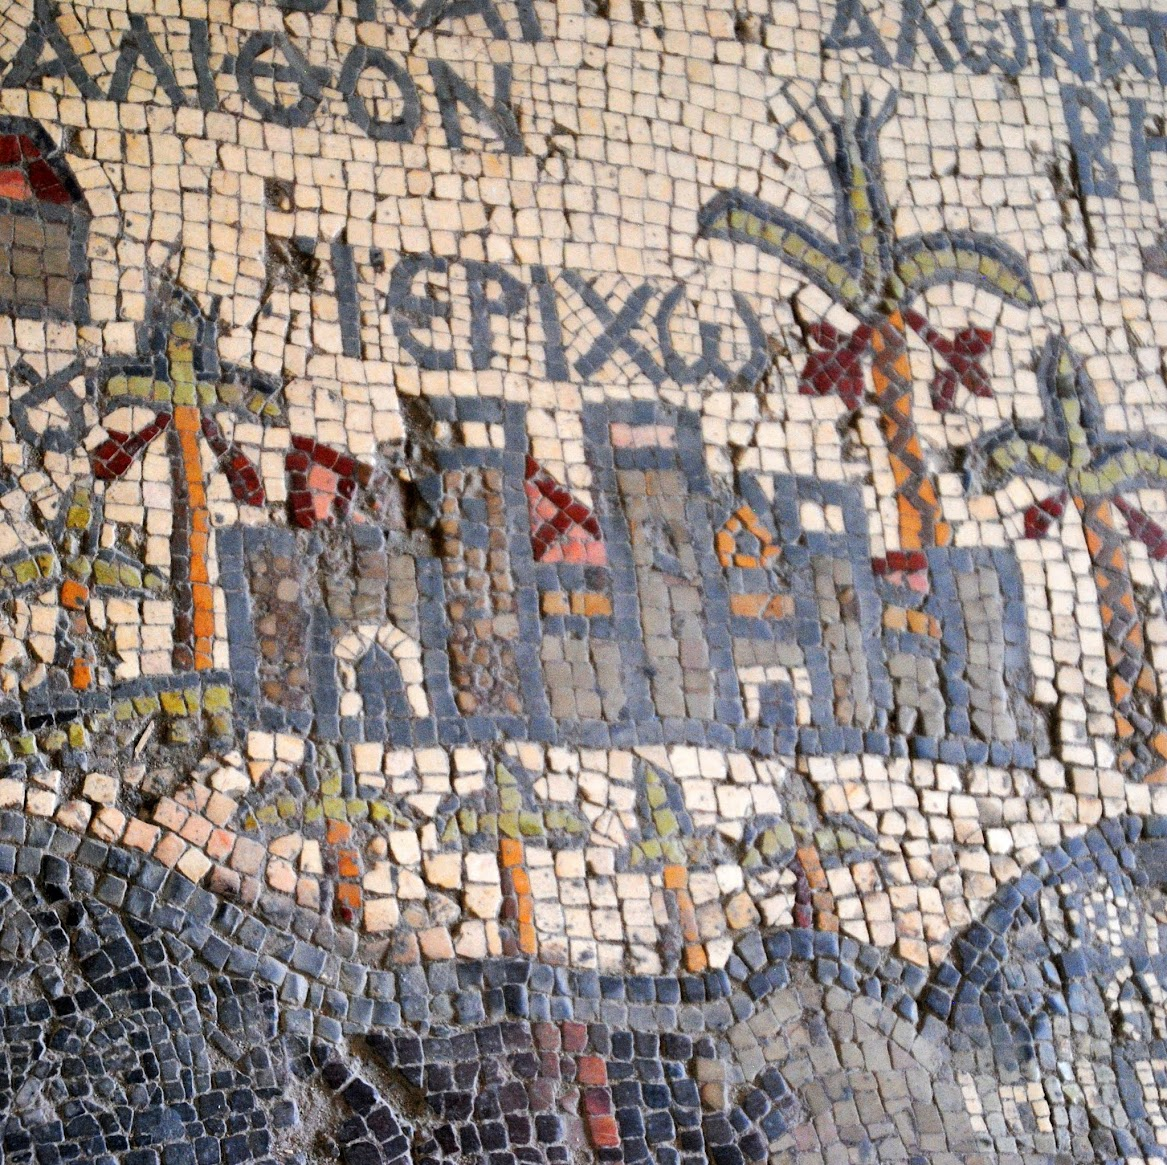 My Photos: Jordan -- Mosaics